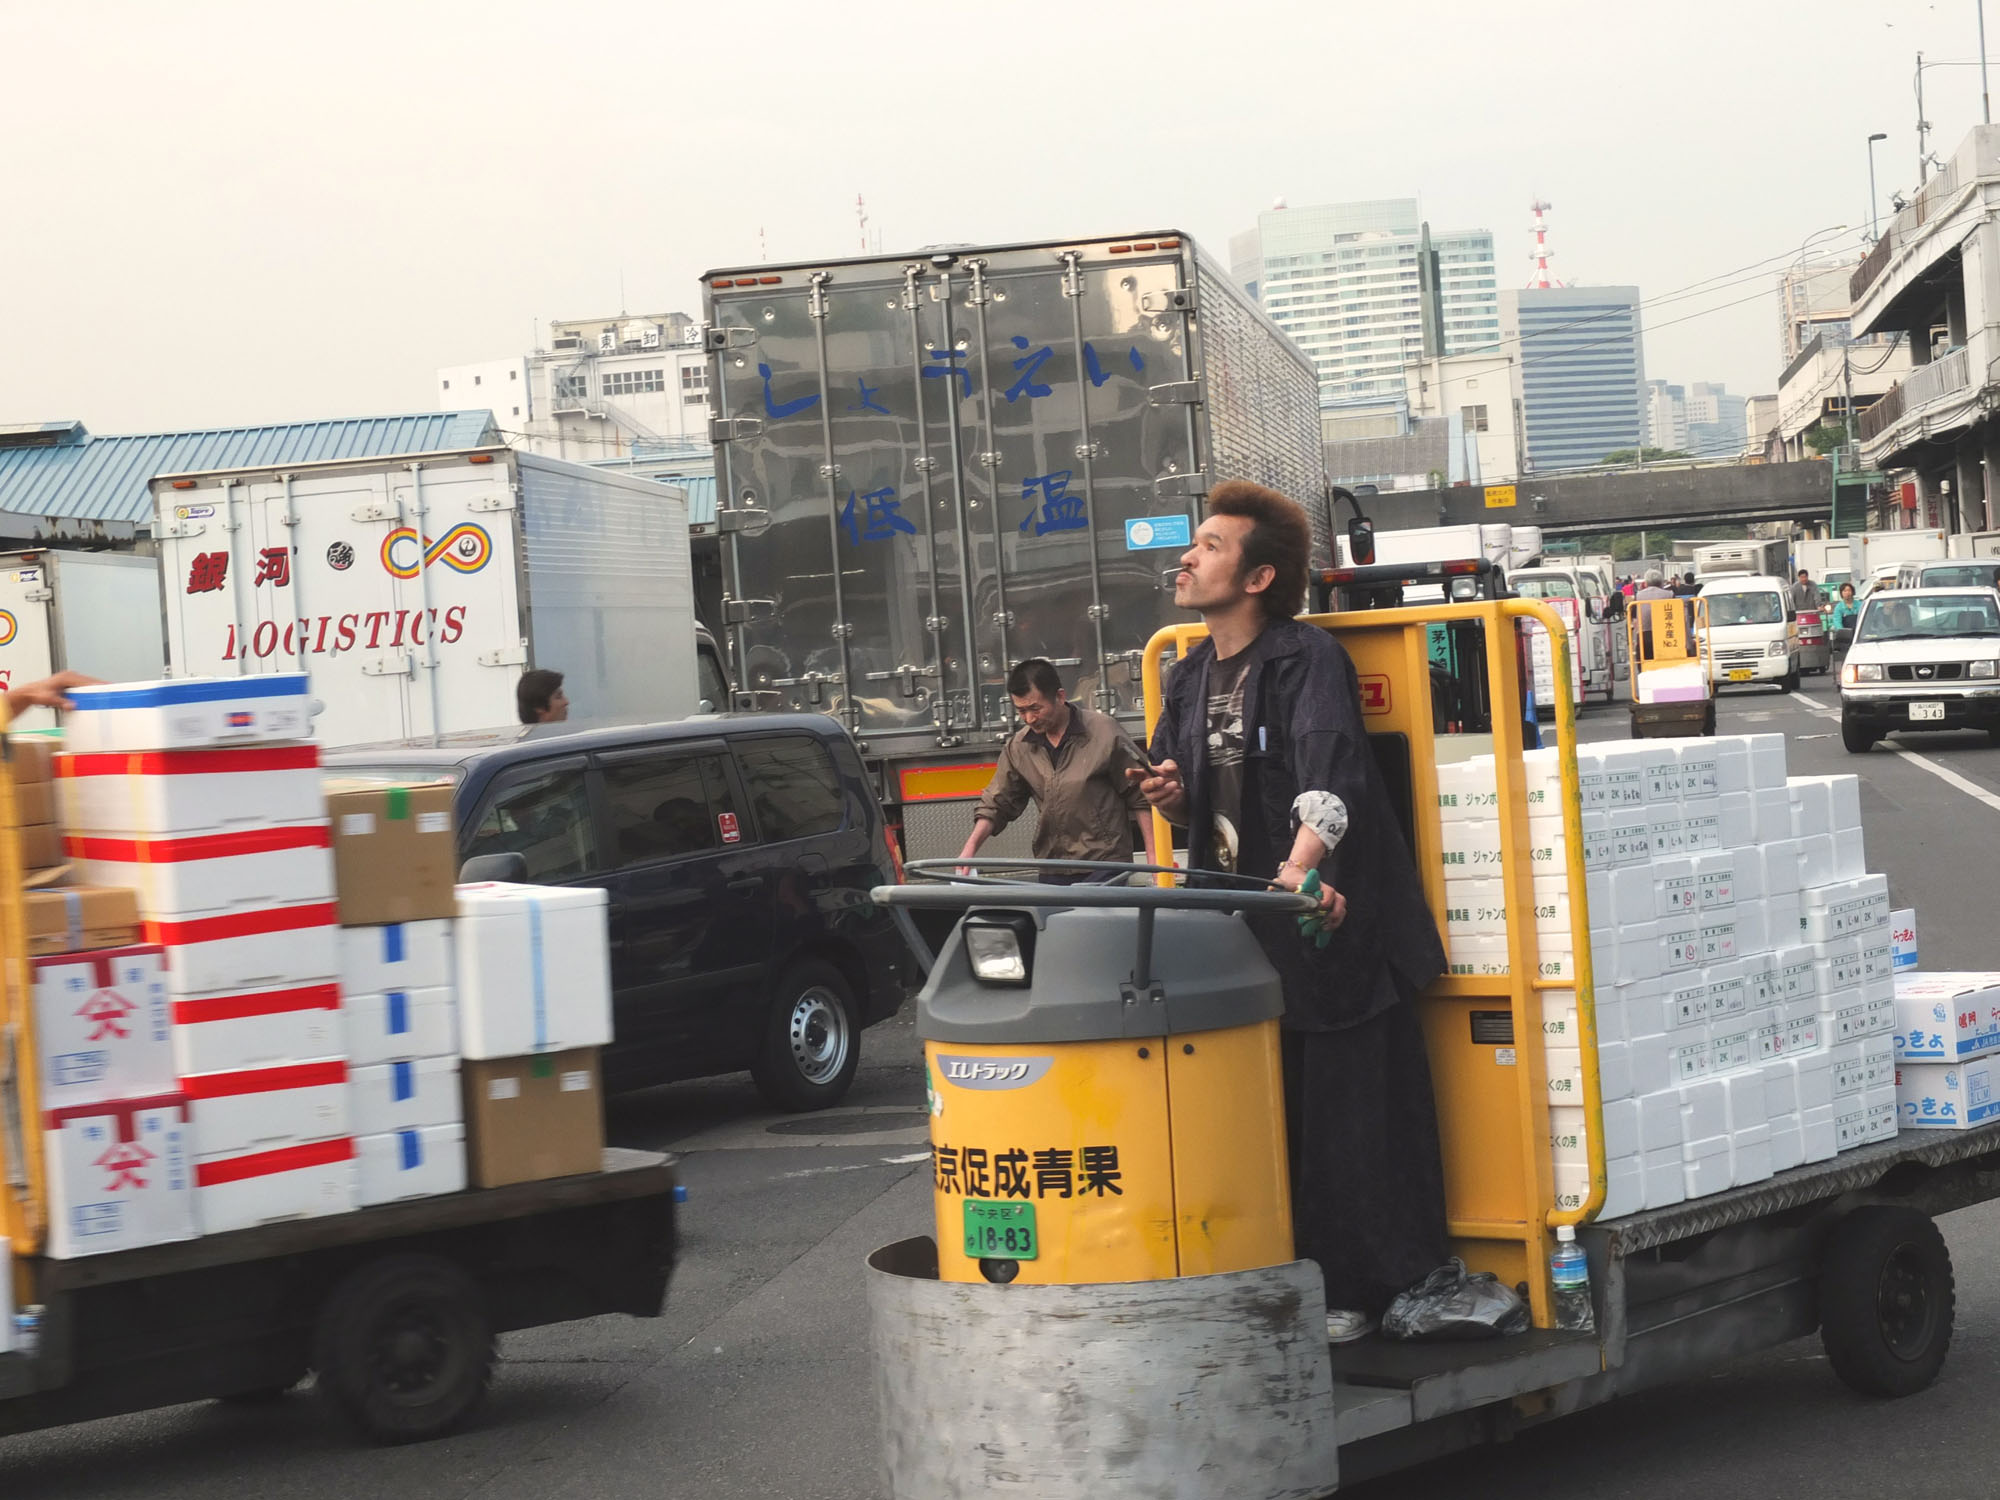 The workers at Tsukiji are masters at driving these transport vehicles around. They also don't stop for nobody.